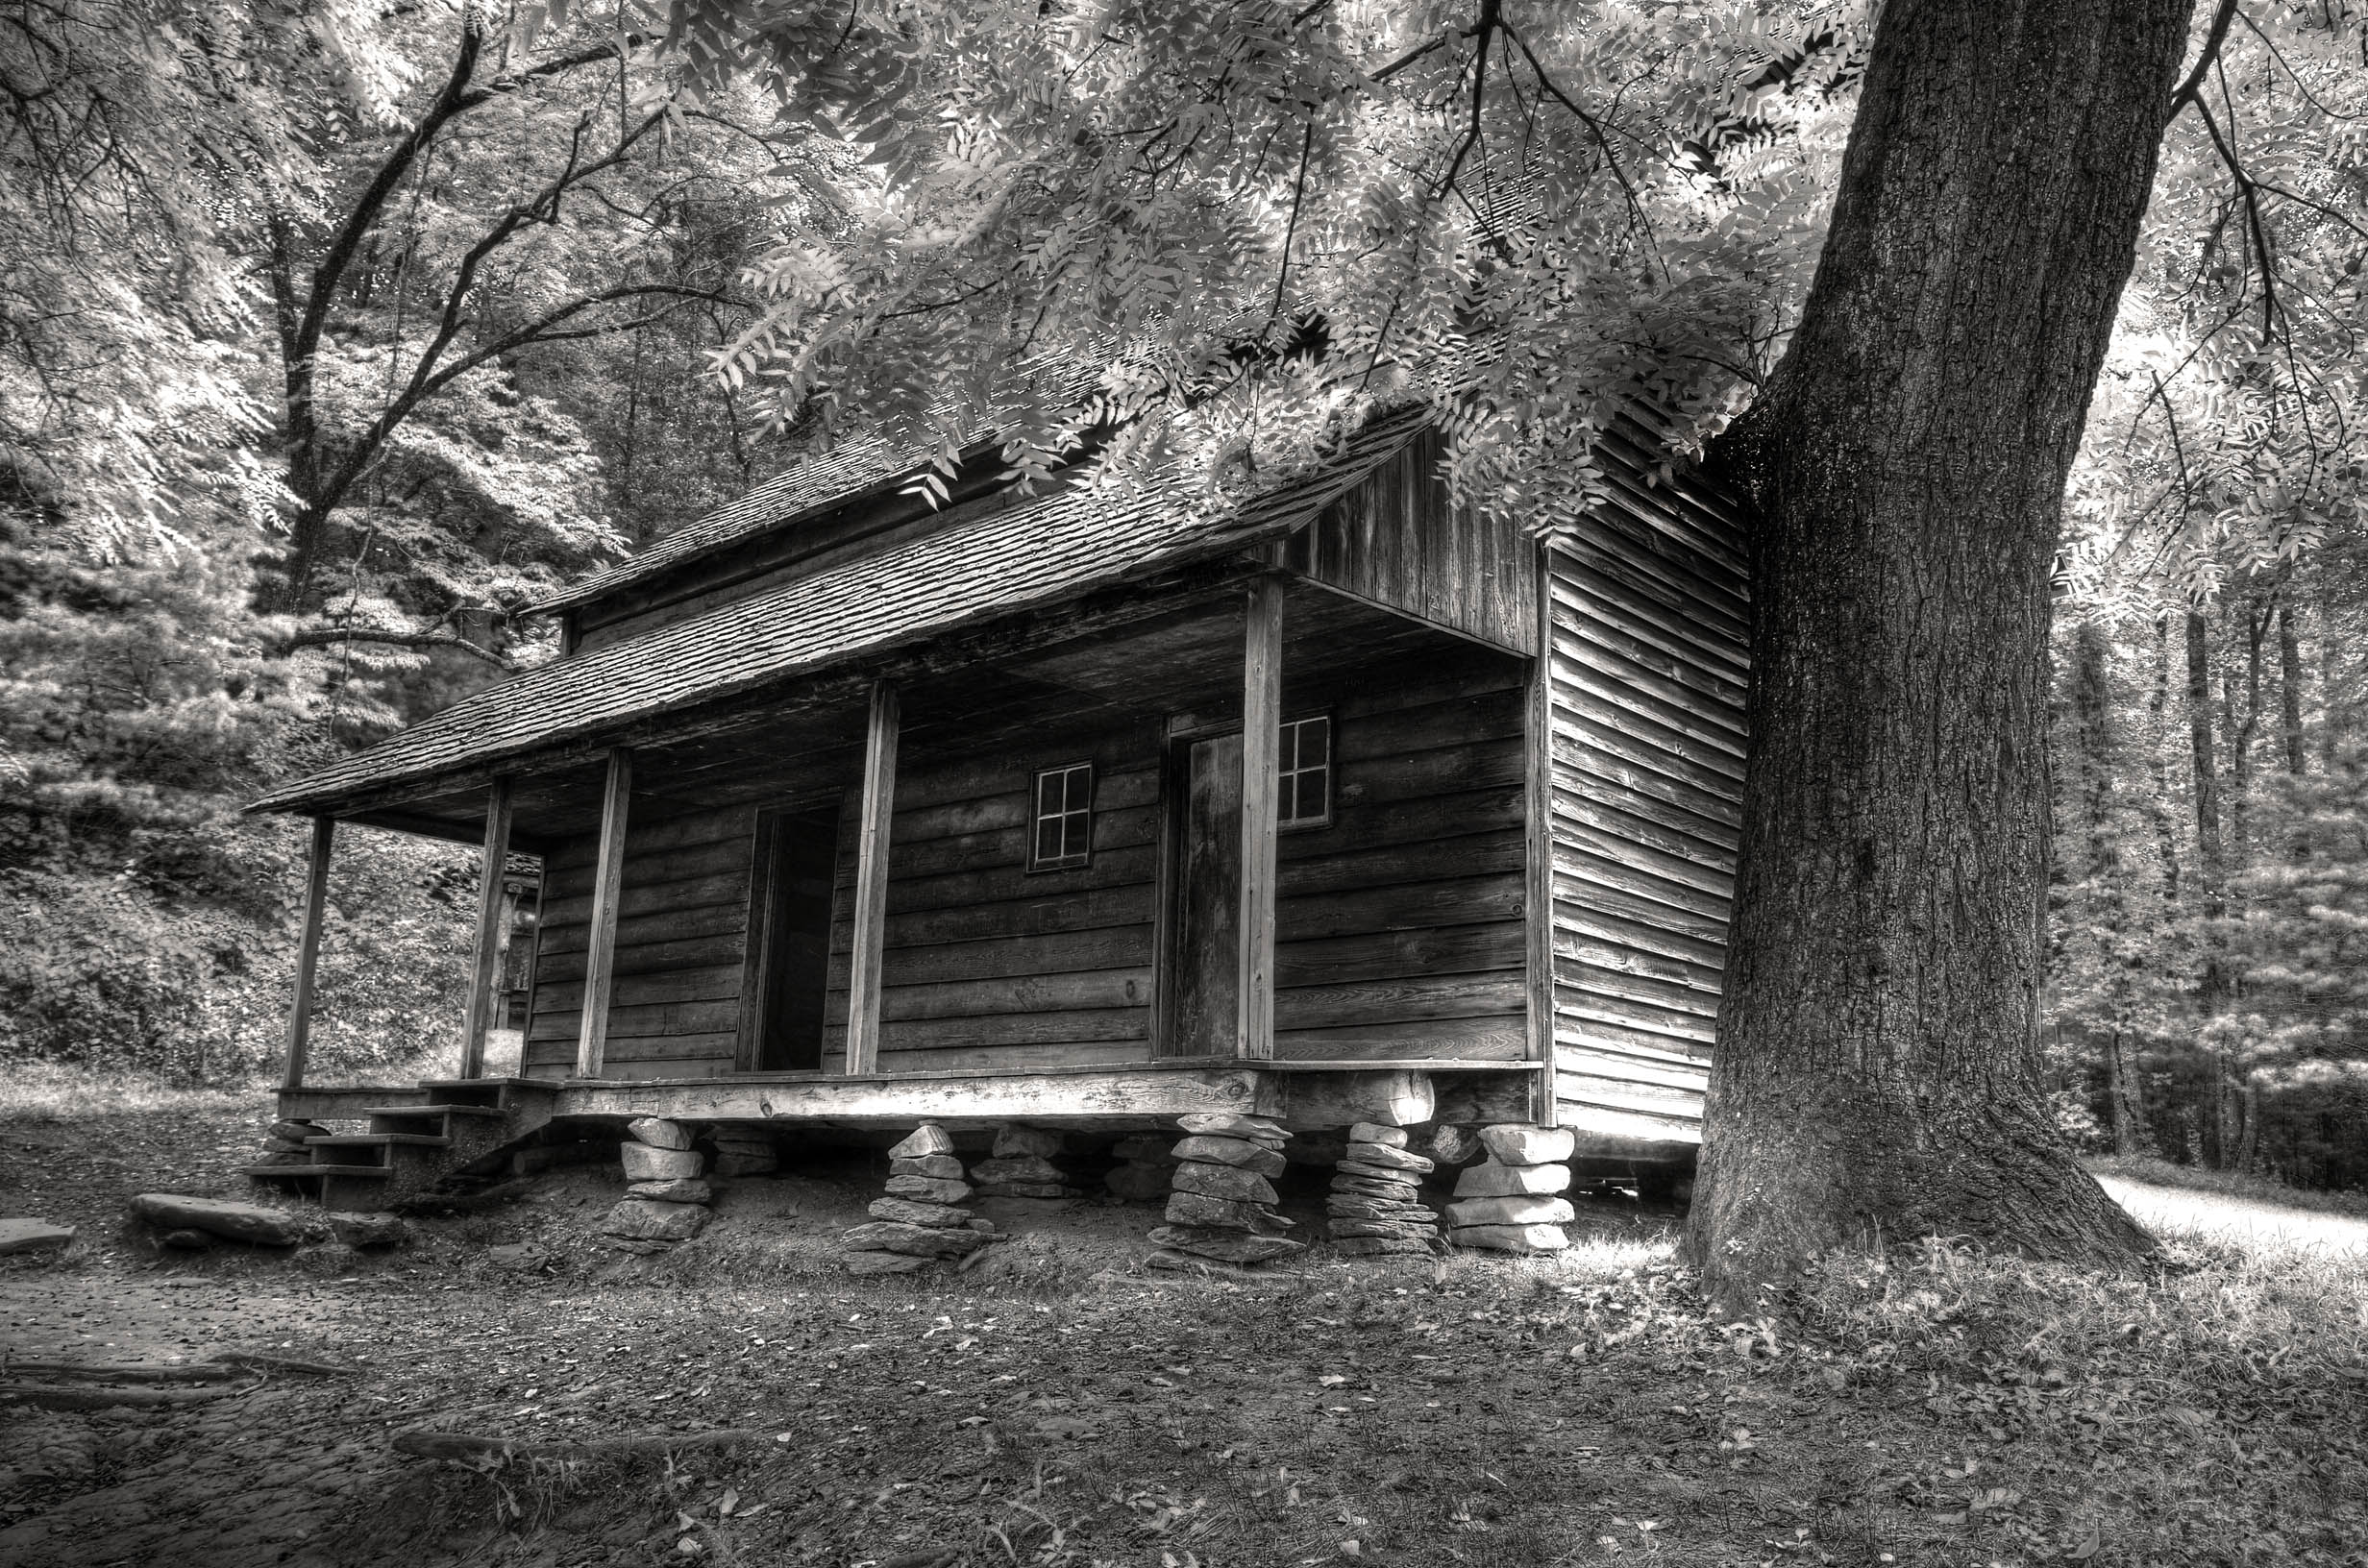 Tennessee Cabin by PaulWeber